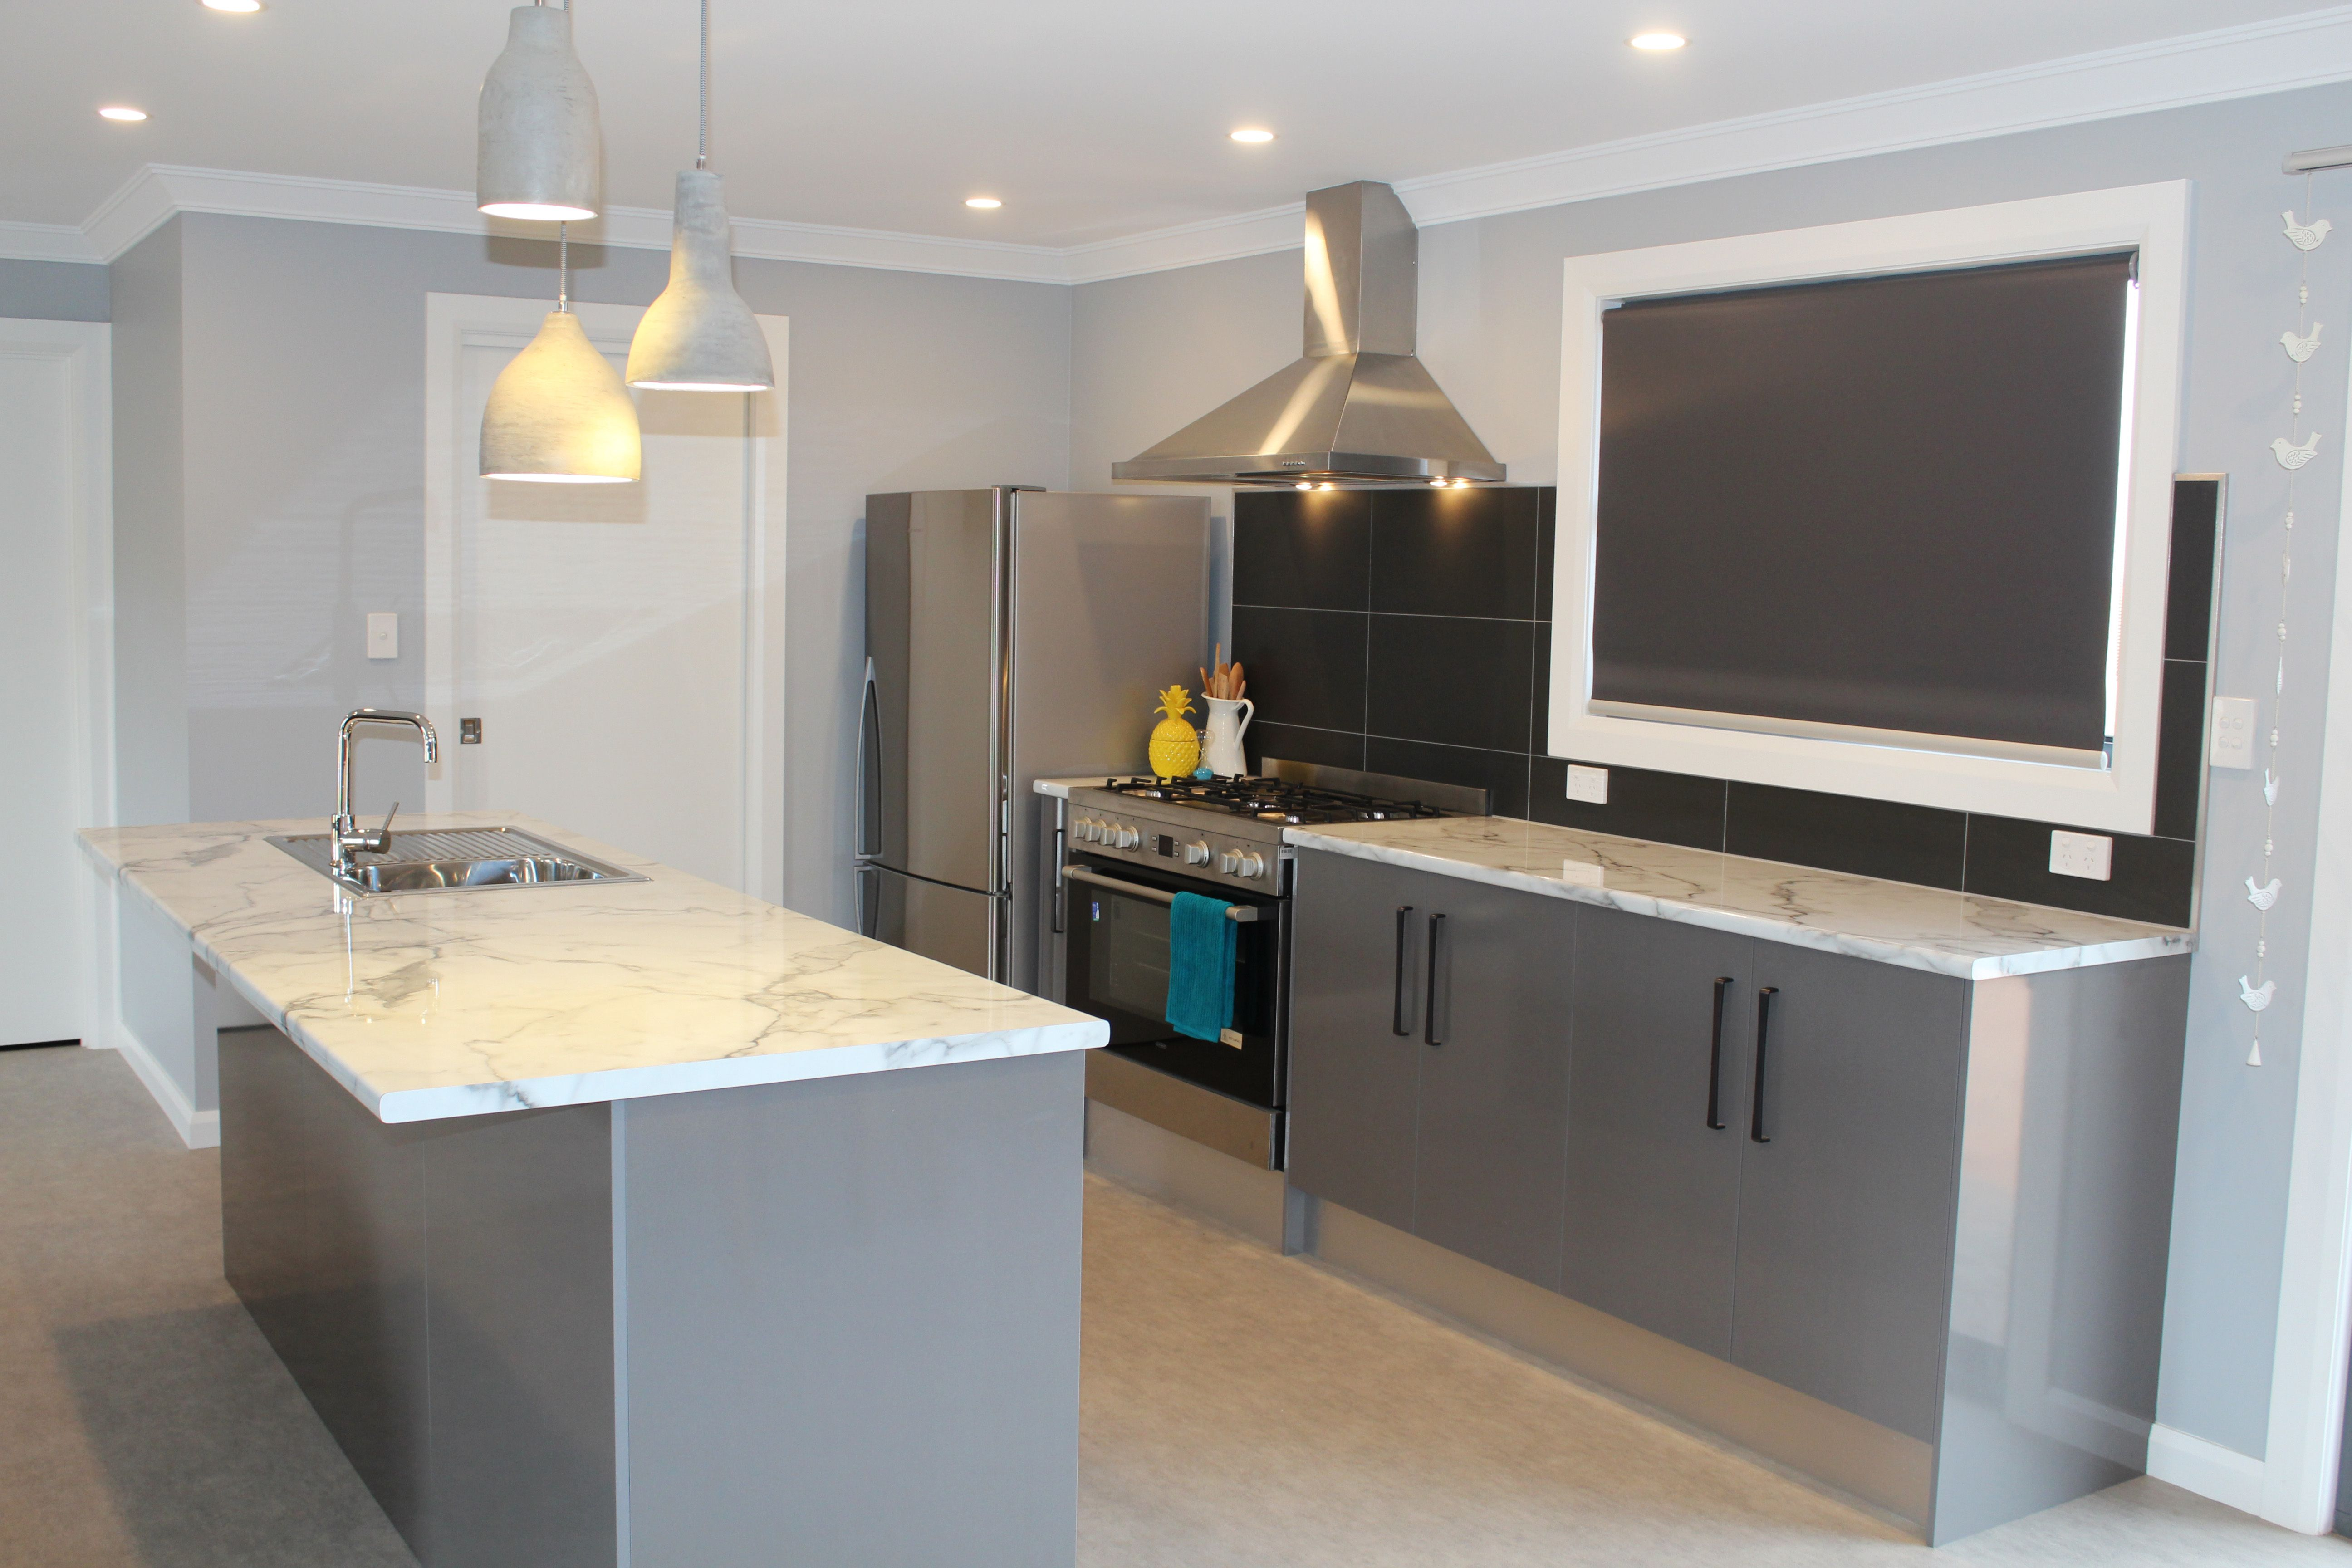 Laminex Kitchen Benchtops Laminex Carrera Marble Diamond Gloss Panels